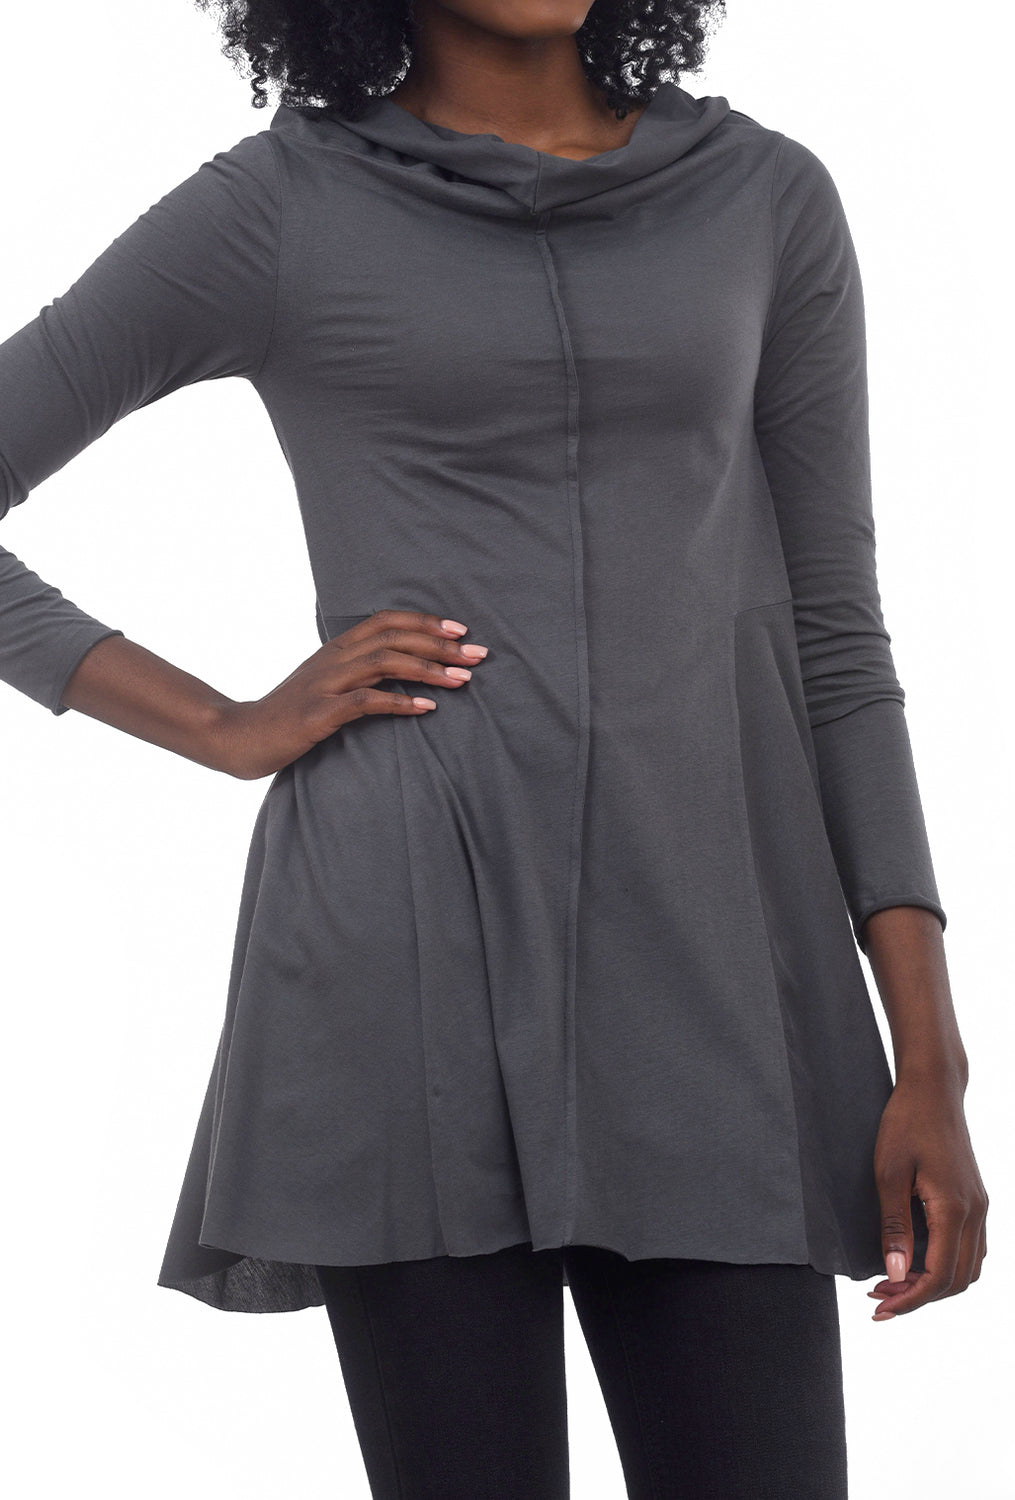 Ozai Ipomea Fit Flare Top, Gray